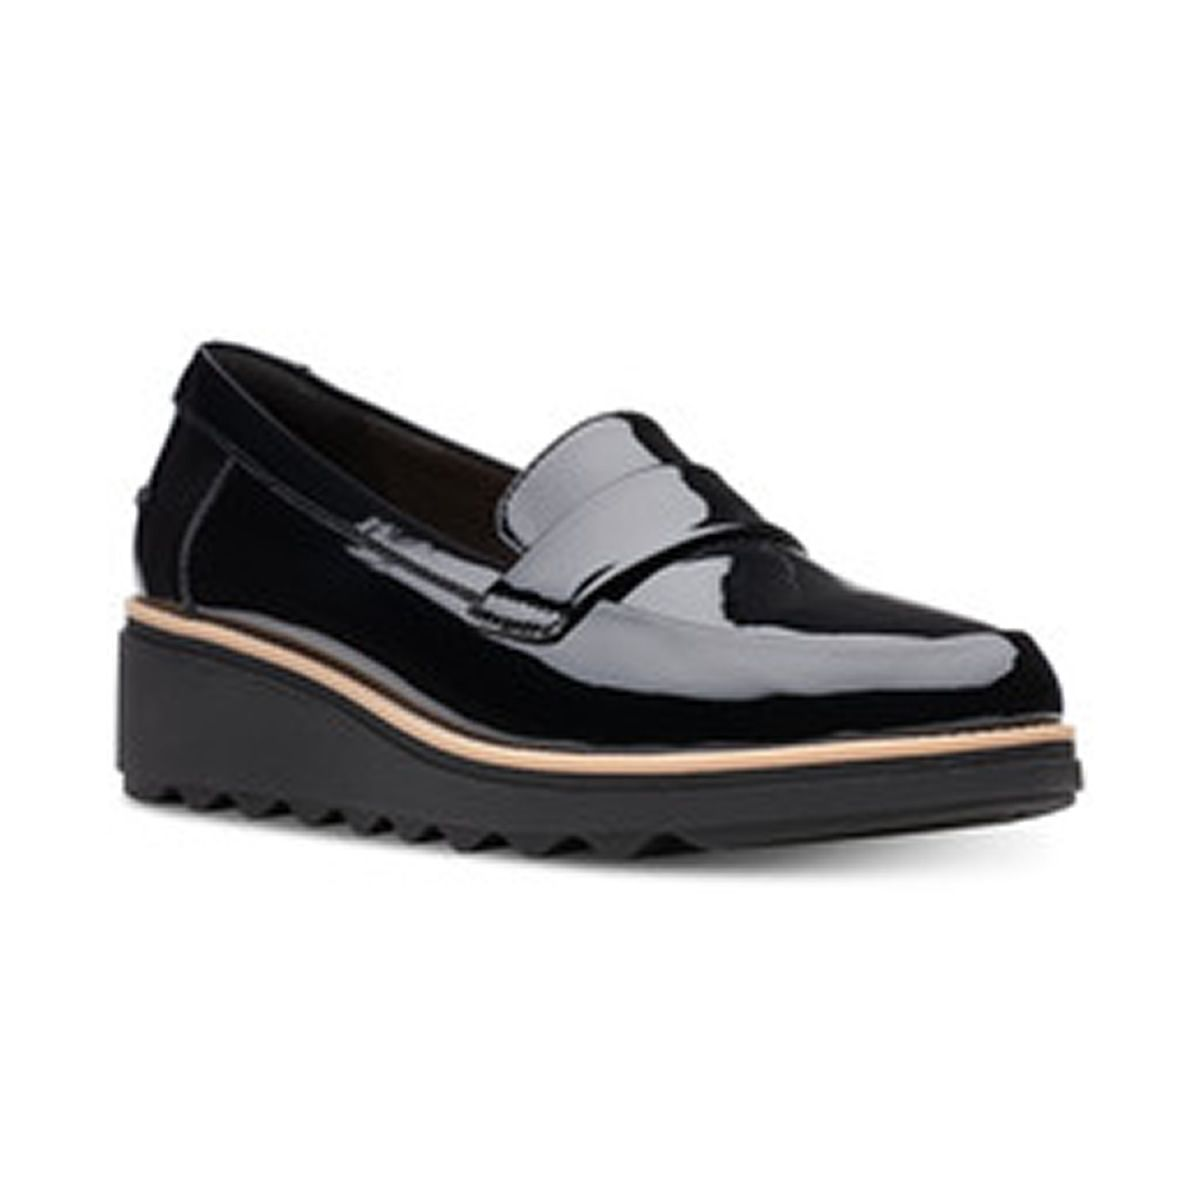 39f94e6eae3a Clarks Shoes for Women - Macy s